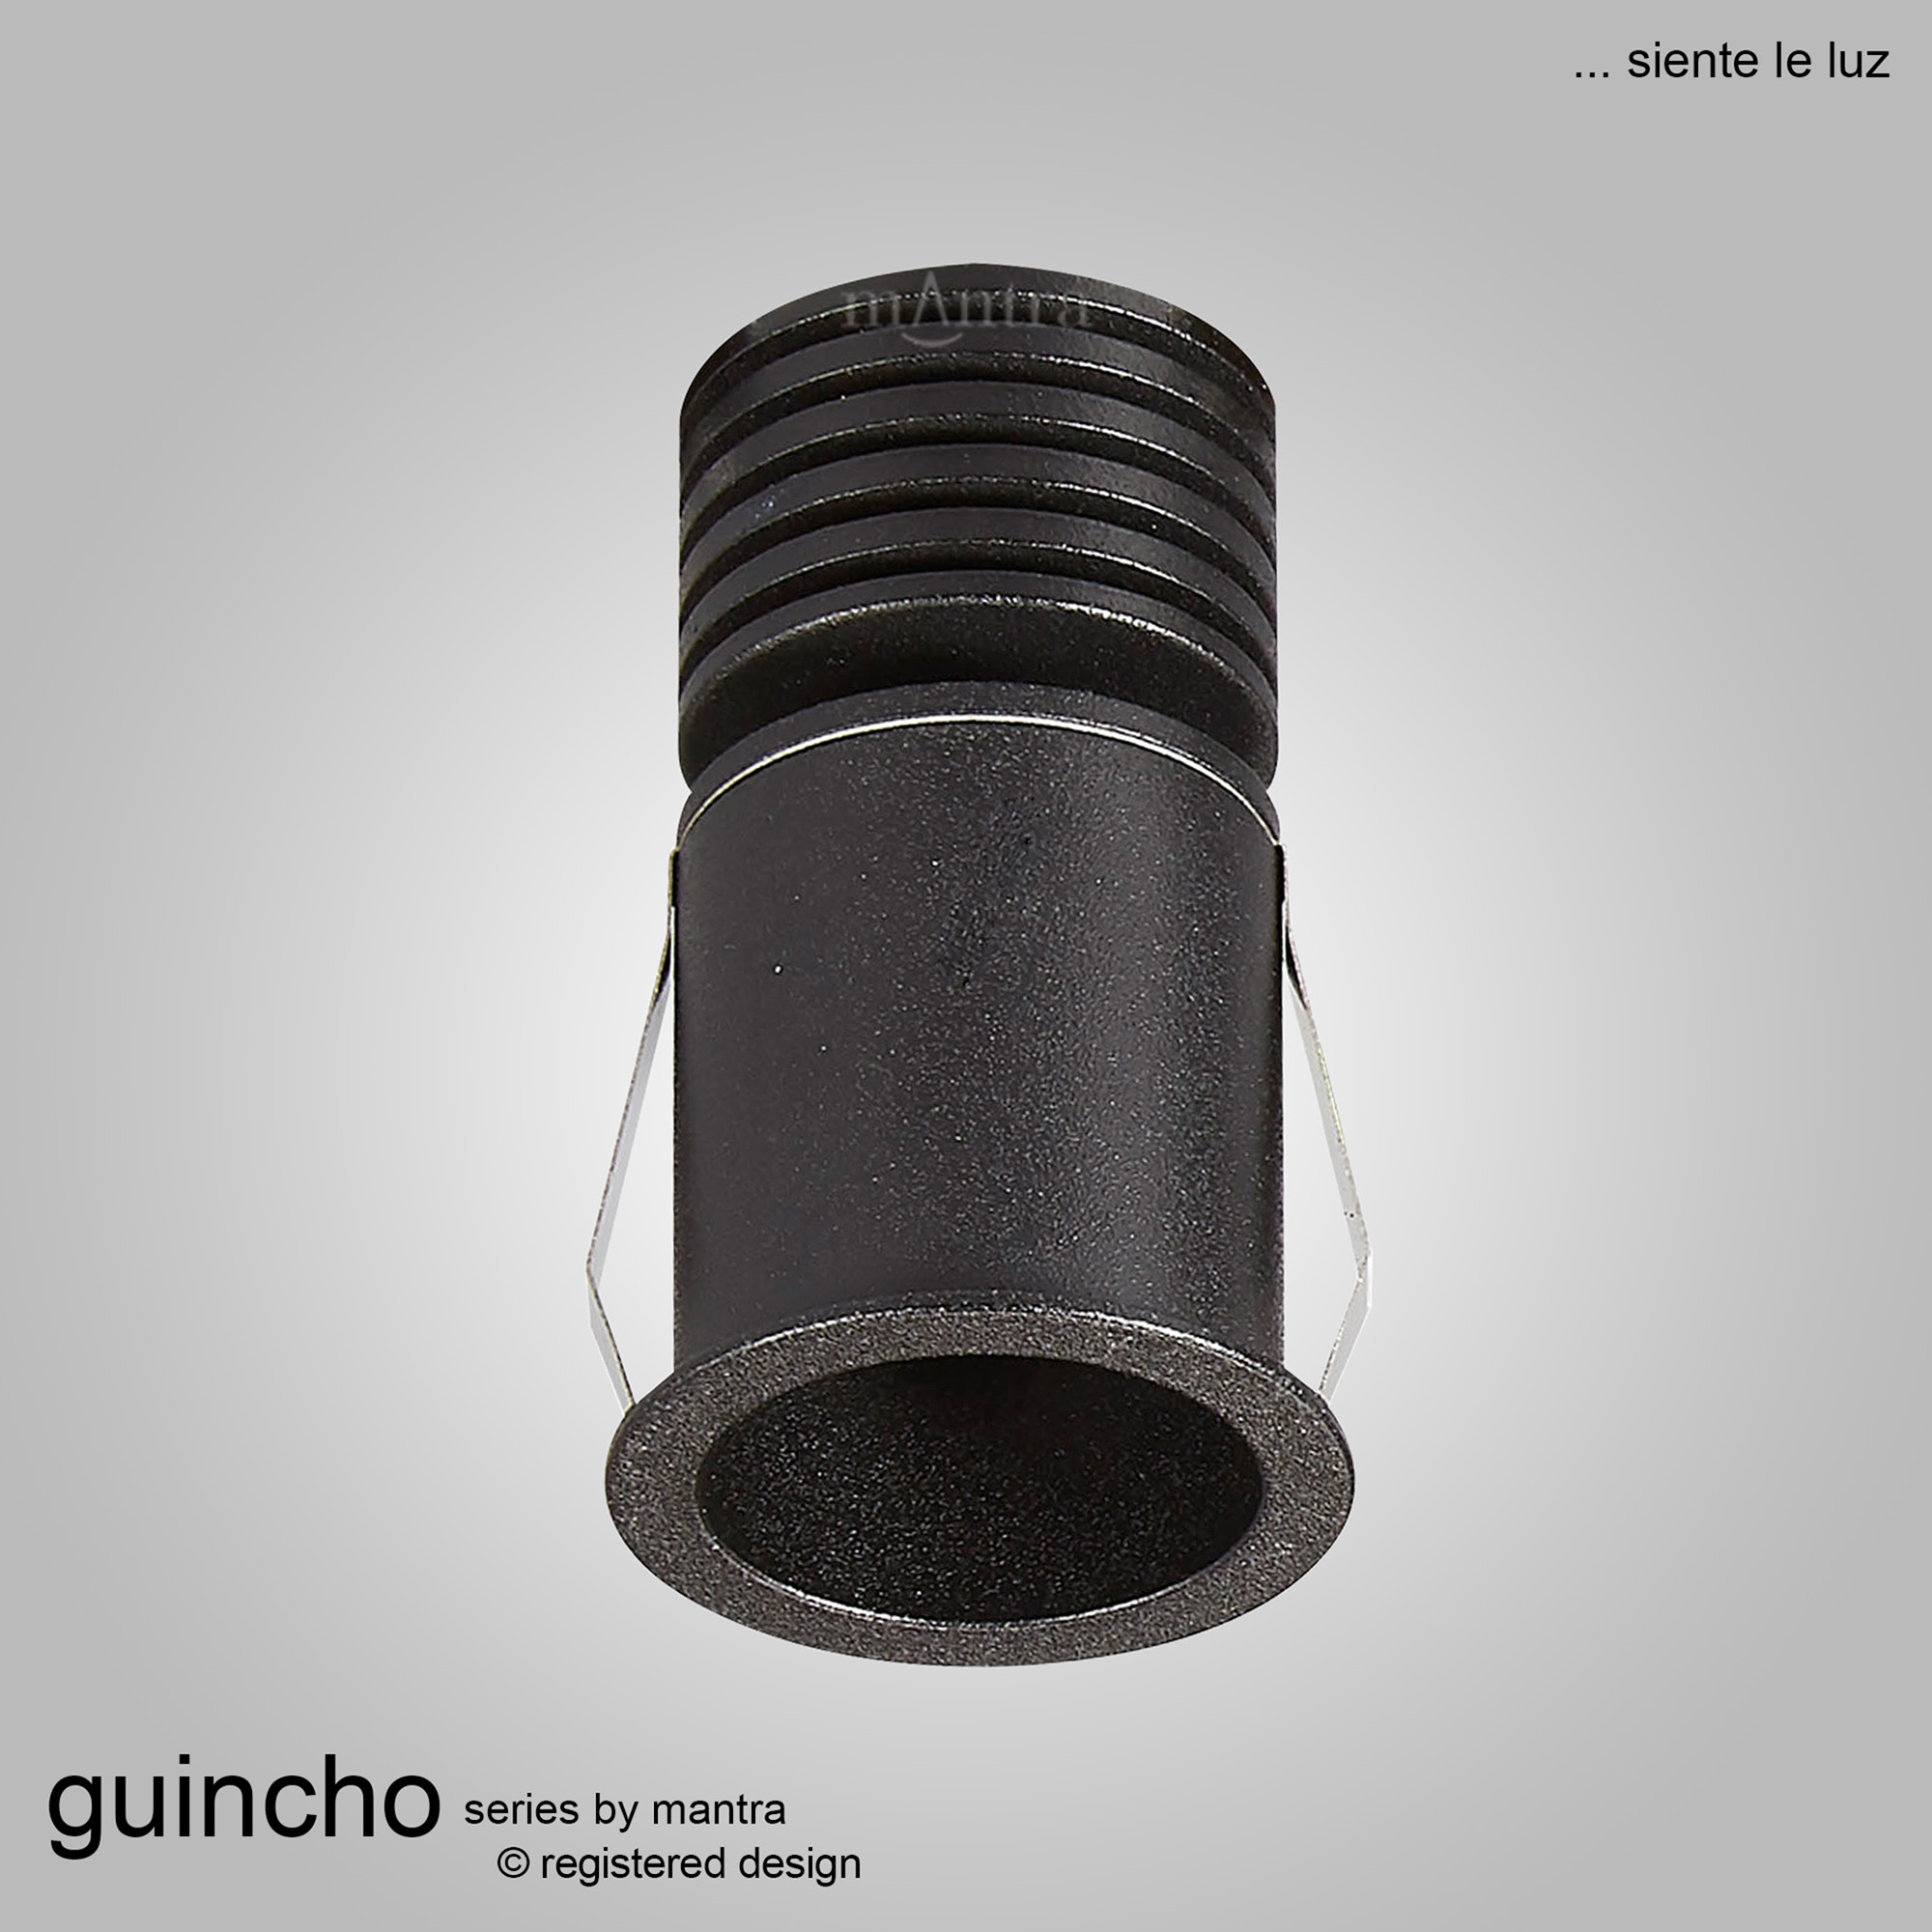 Guincho Ceiling Lights Mantra Fusion Recessed Lights